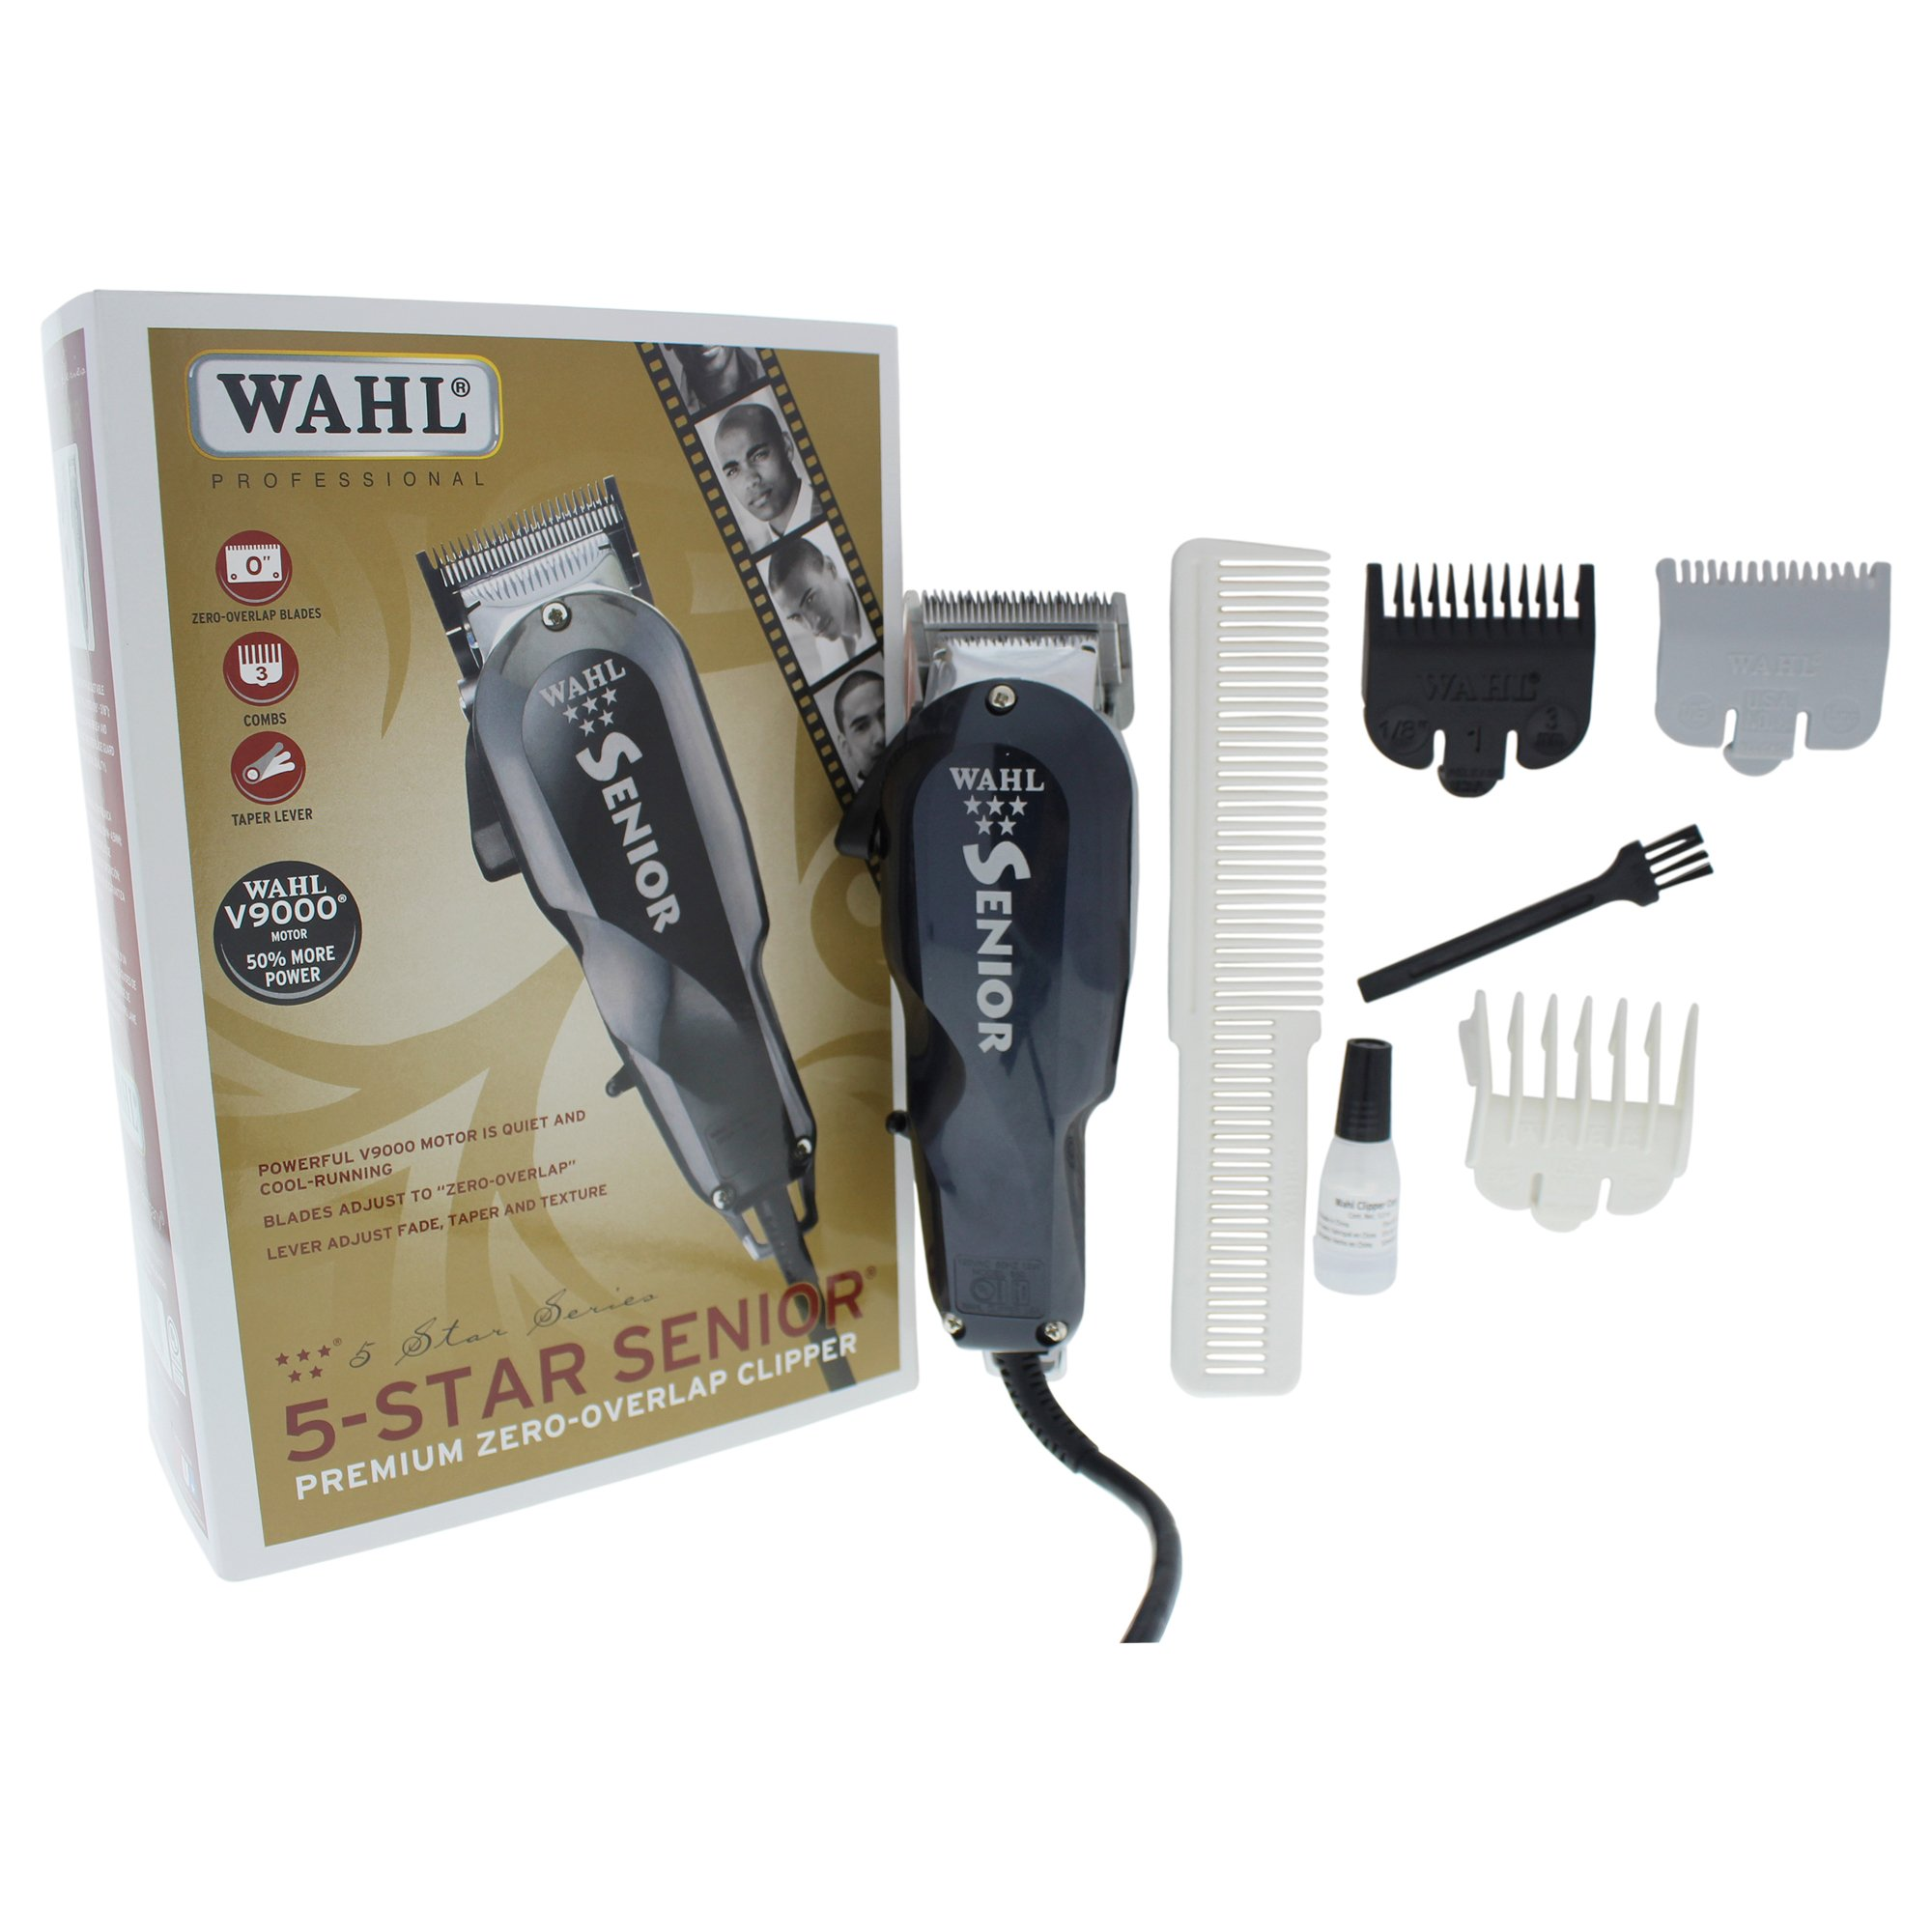 Wahl Professional 5 Star Series Senior Clipper #8545 – Great for Professional Stylists and Barbers – V9000 Electromagnetic Motor – Black --Aluminum metal bottom housing